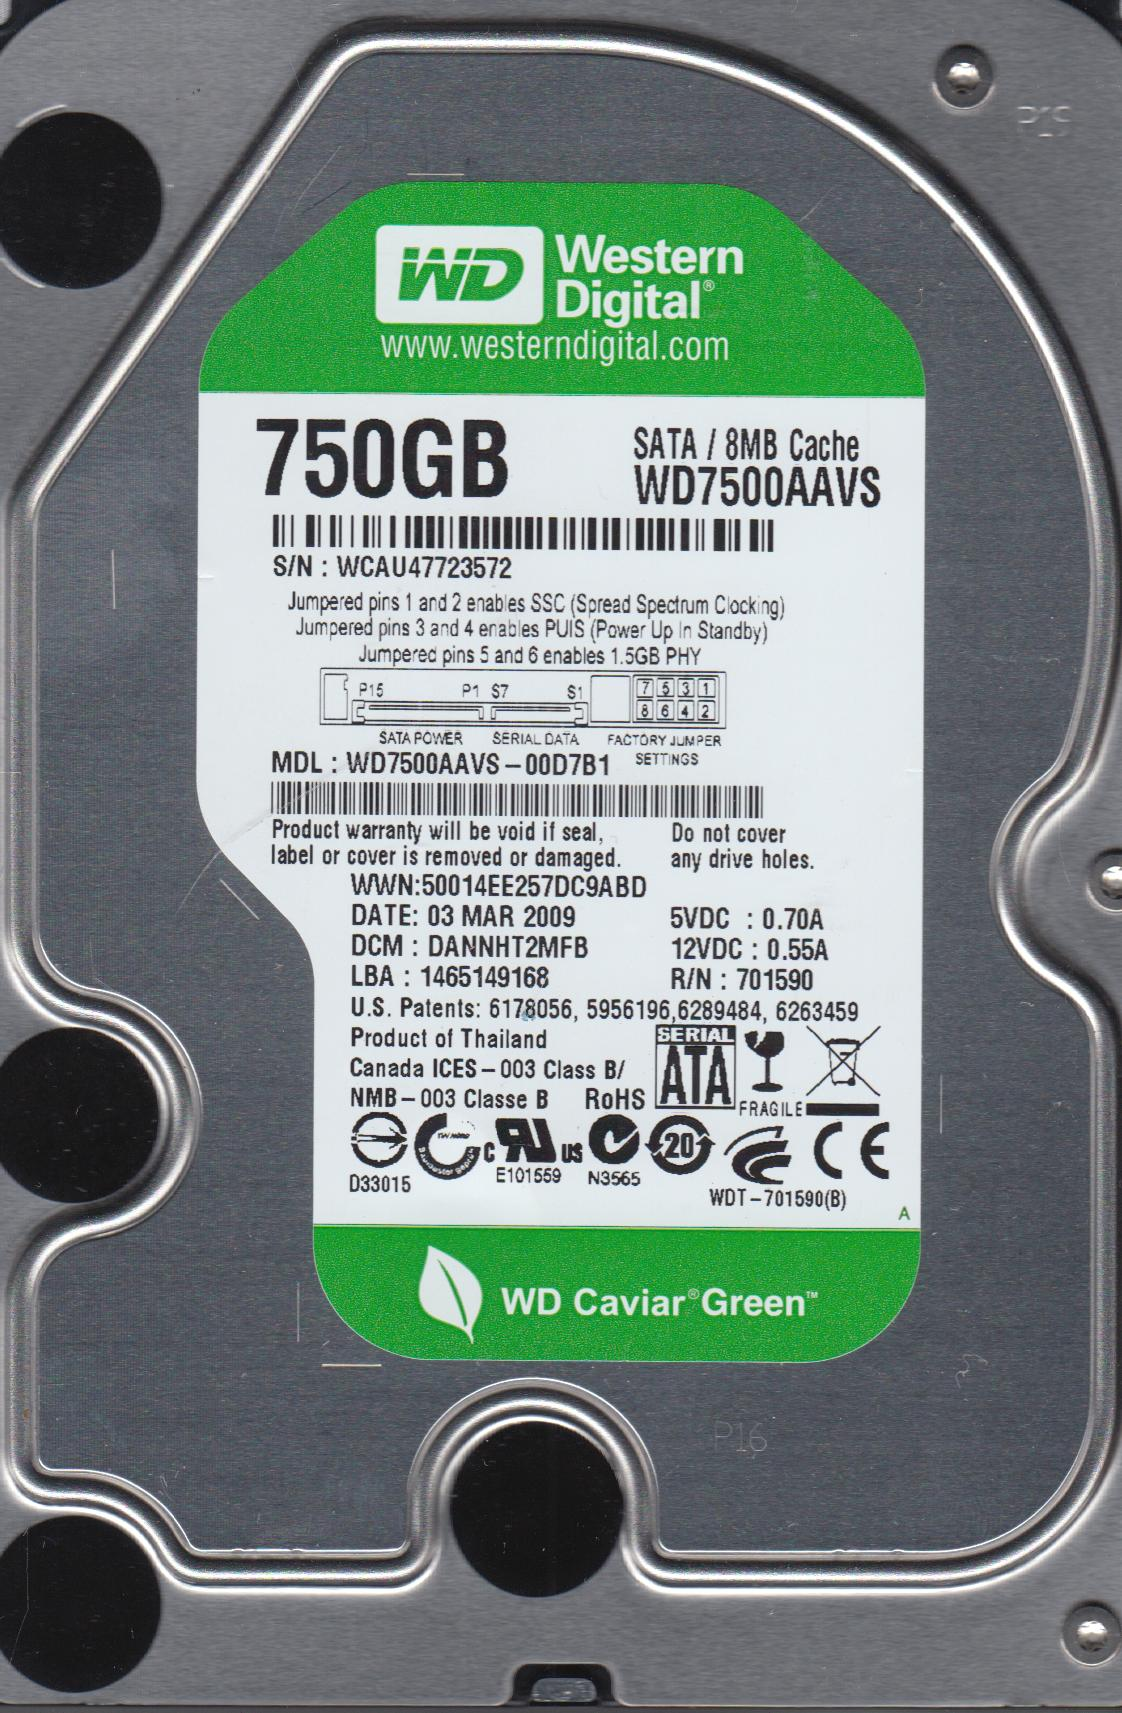 WD7500AAVS